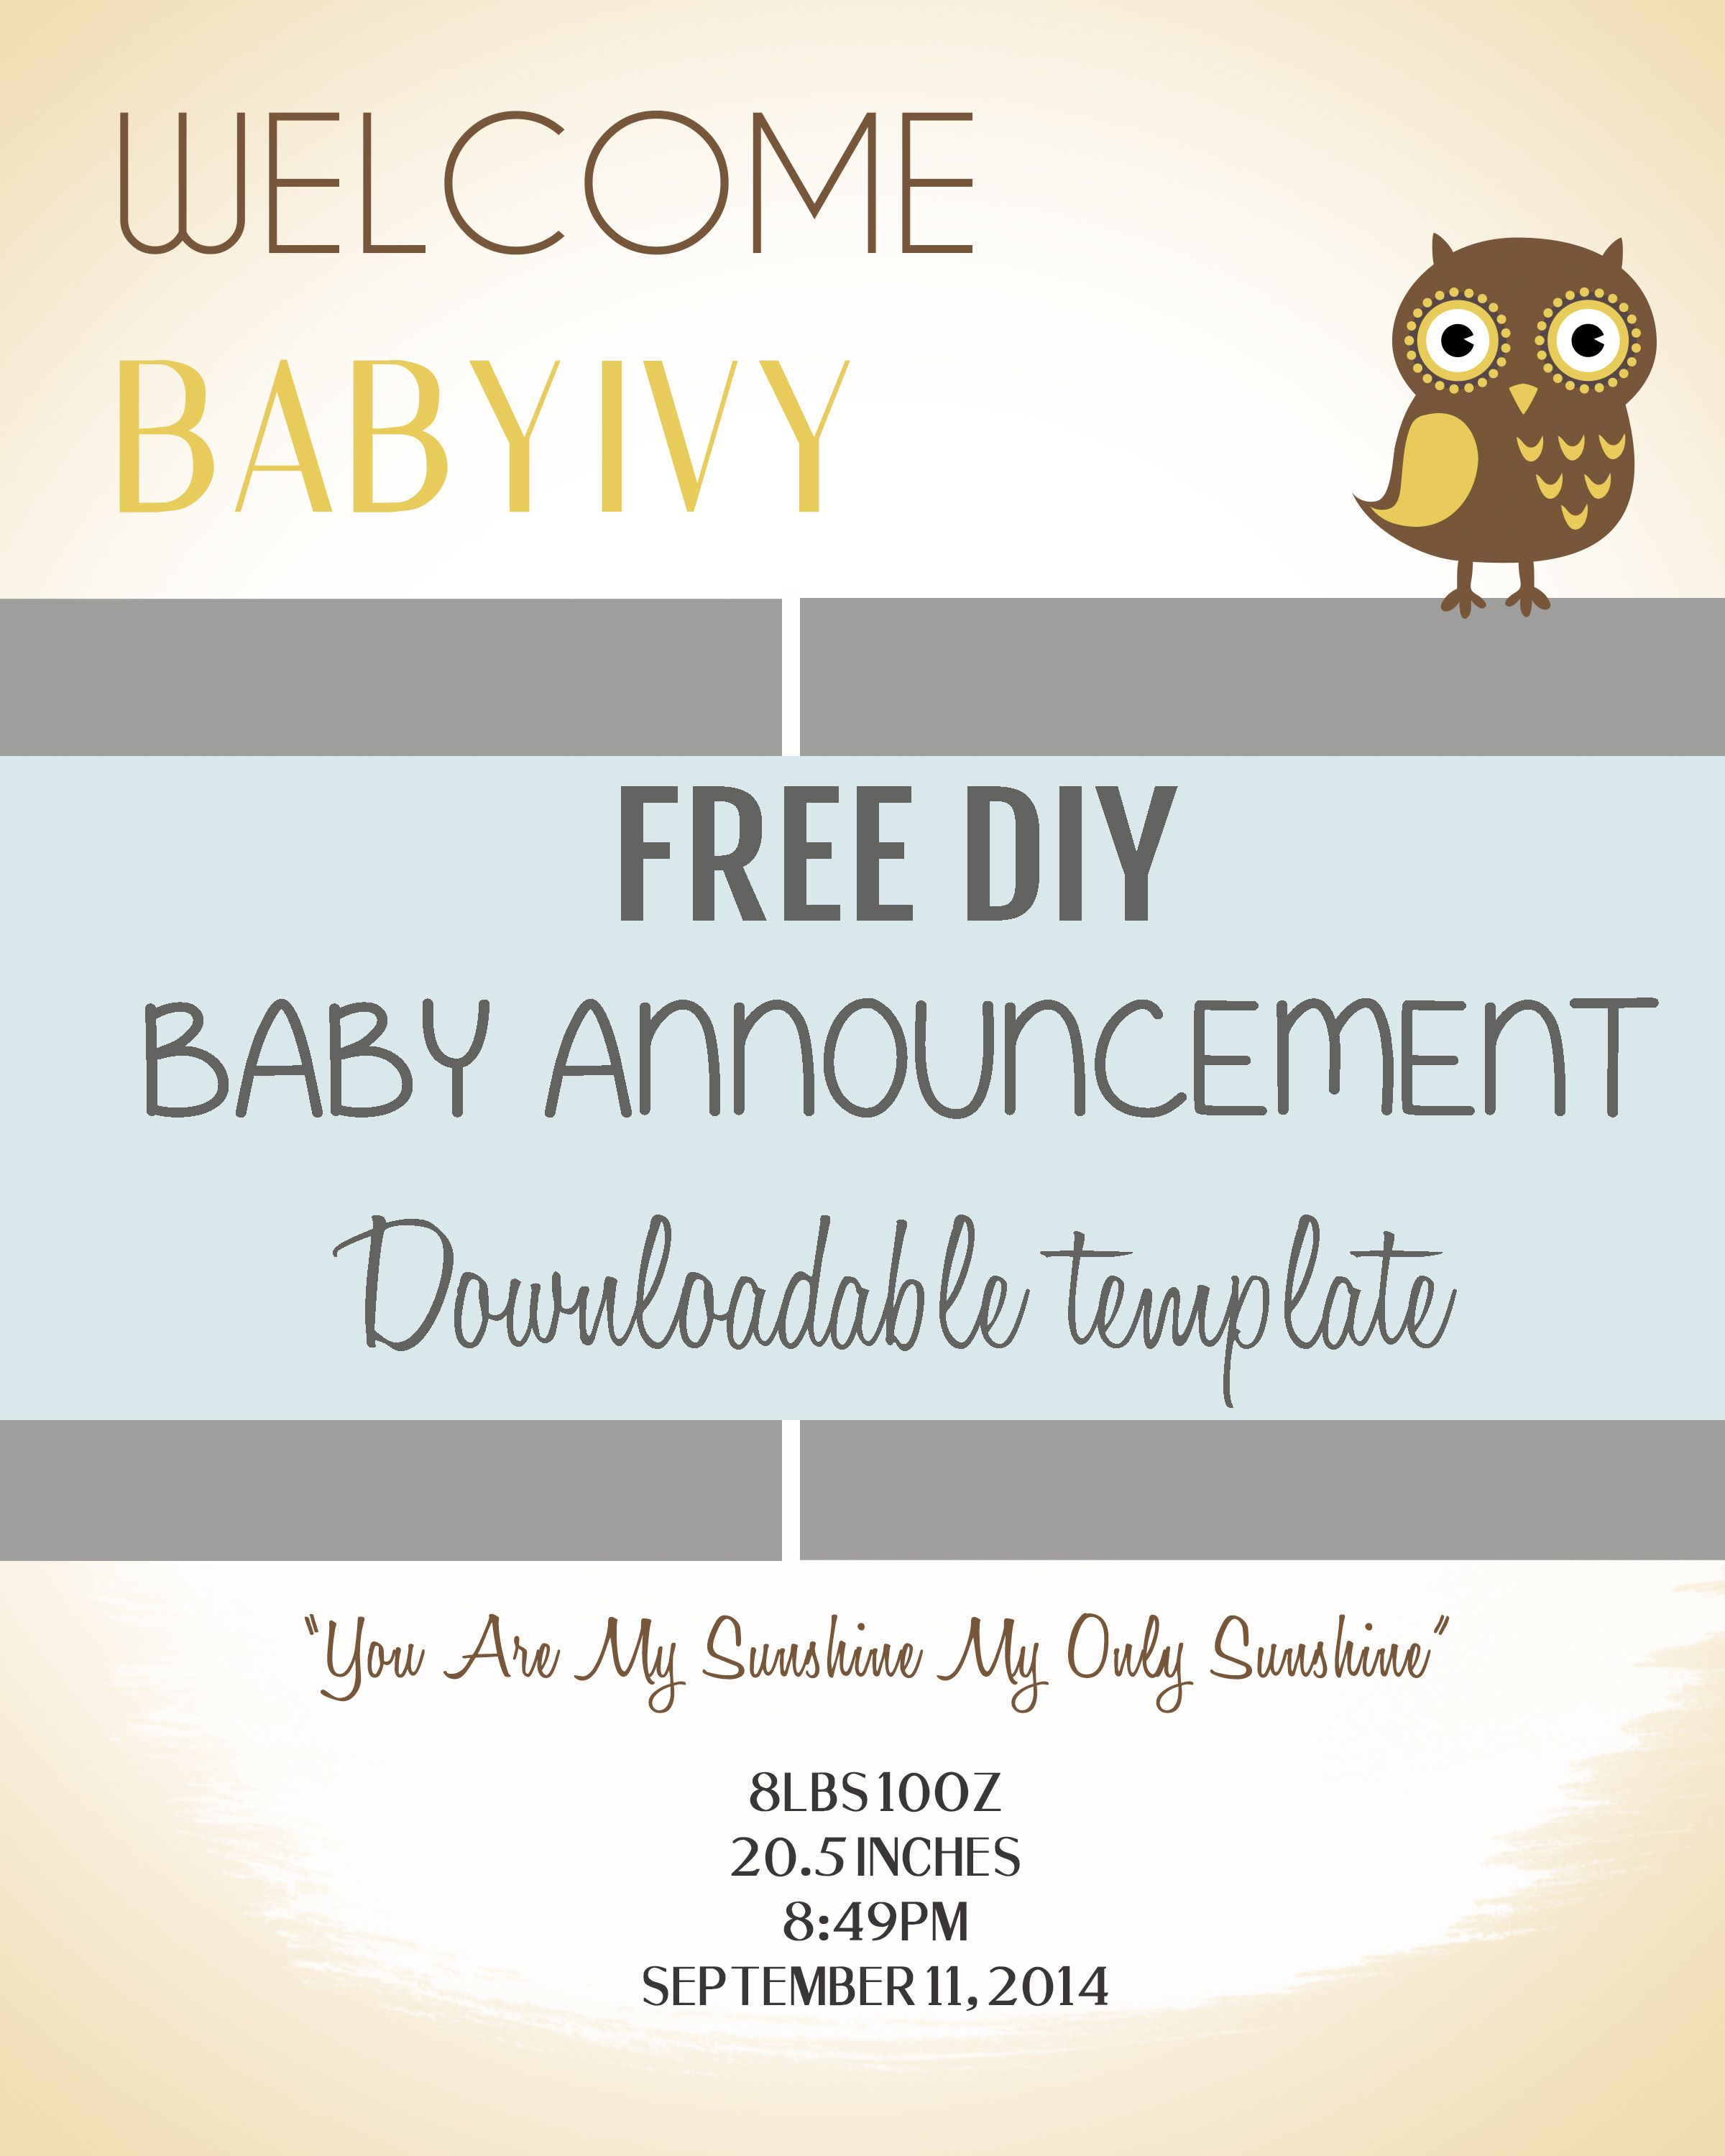 Diy Baby Announcement Template | Pee Wee | Fun Baby Announcement - Free Printable Baby Birth Announcement Cards